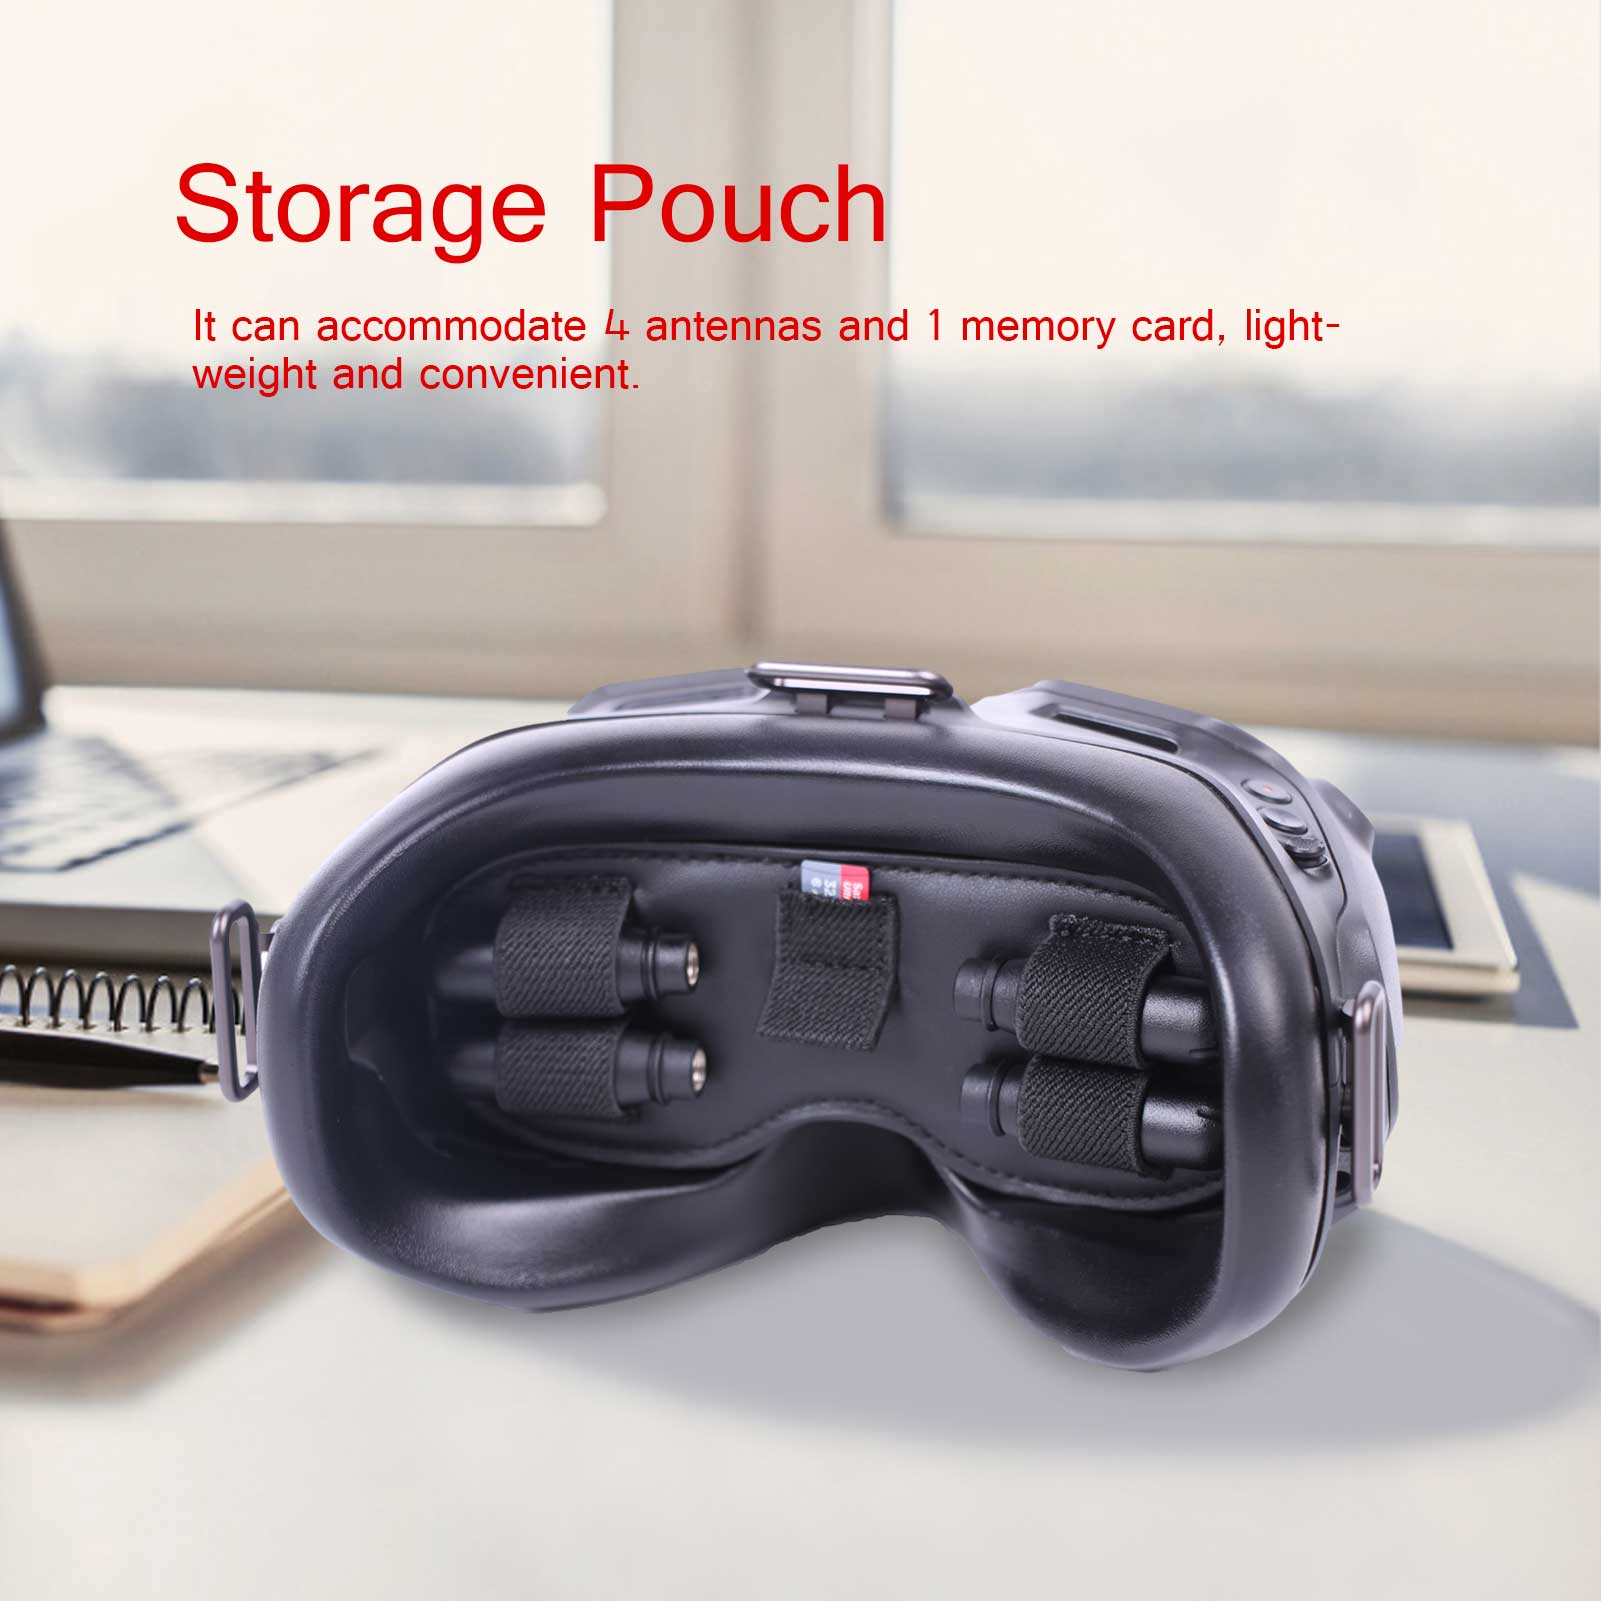 3 In 1 DJI Storage Mat Pad For DJI FPV Flying Glasses V2 Goggles Dust-proof Light-proof Storage Cover Accessories For DJI FPV